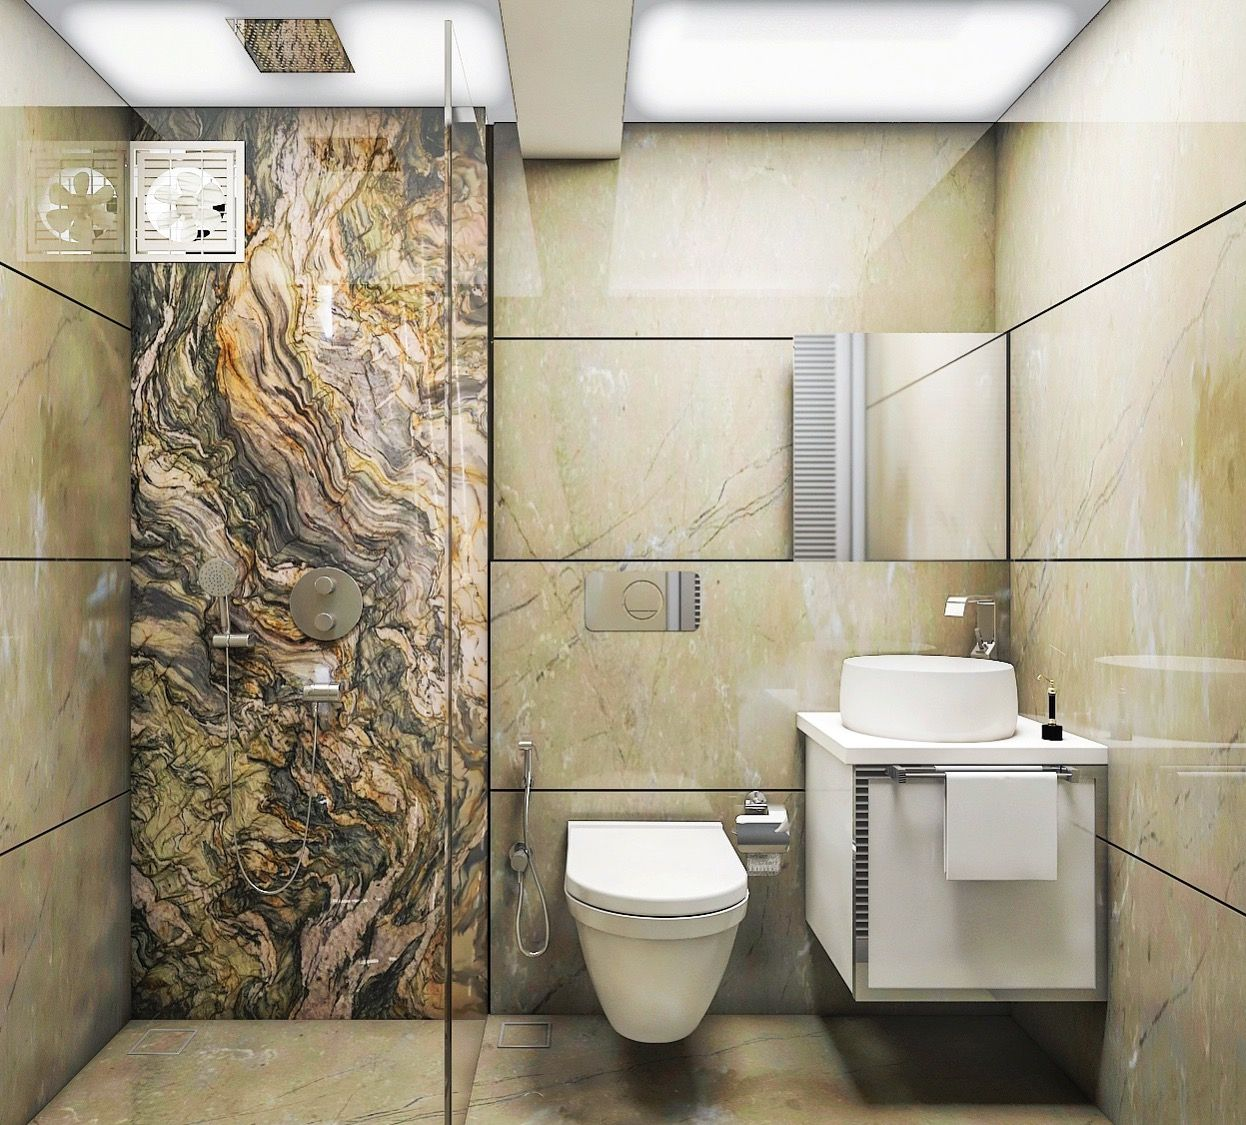 3D Perspective Render of a Small toilet marble wall cladding with